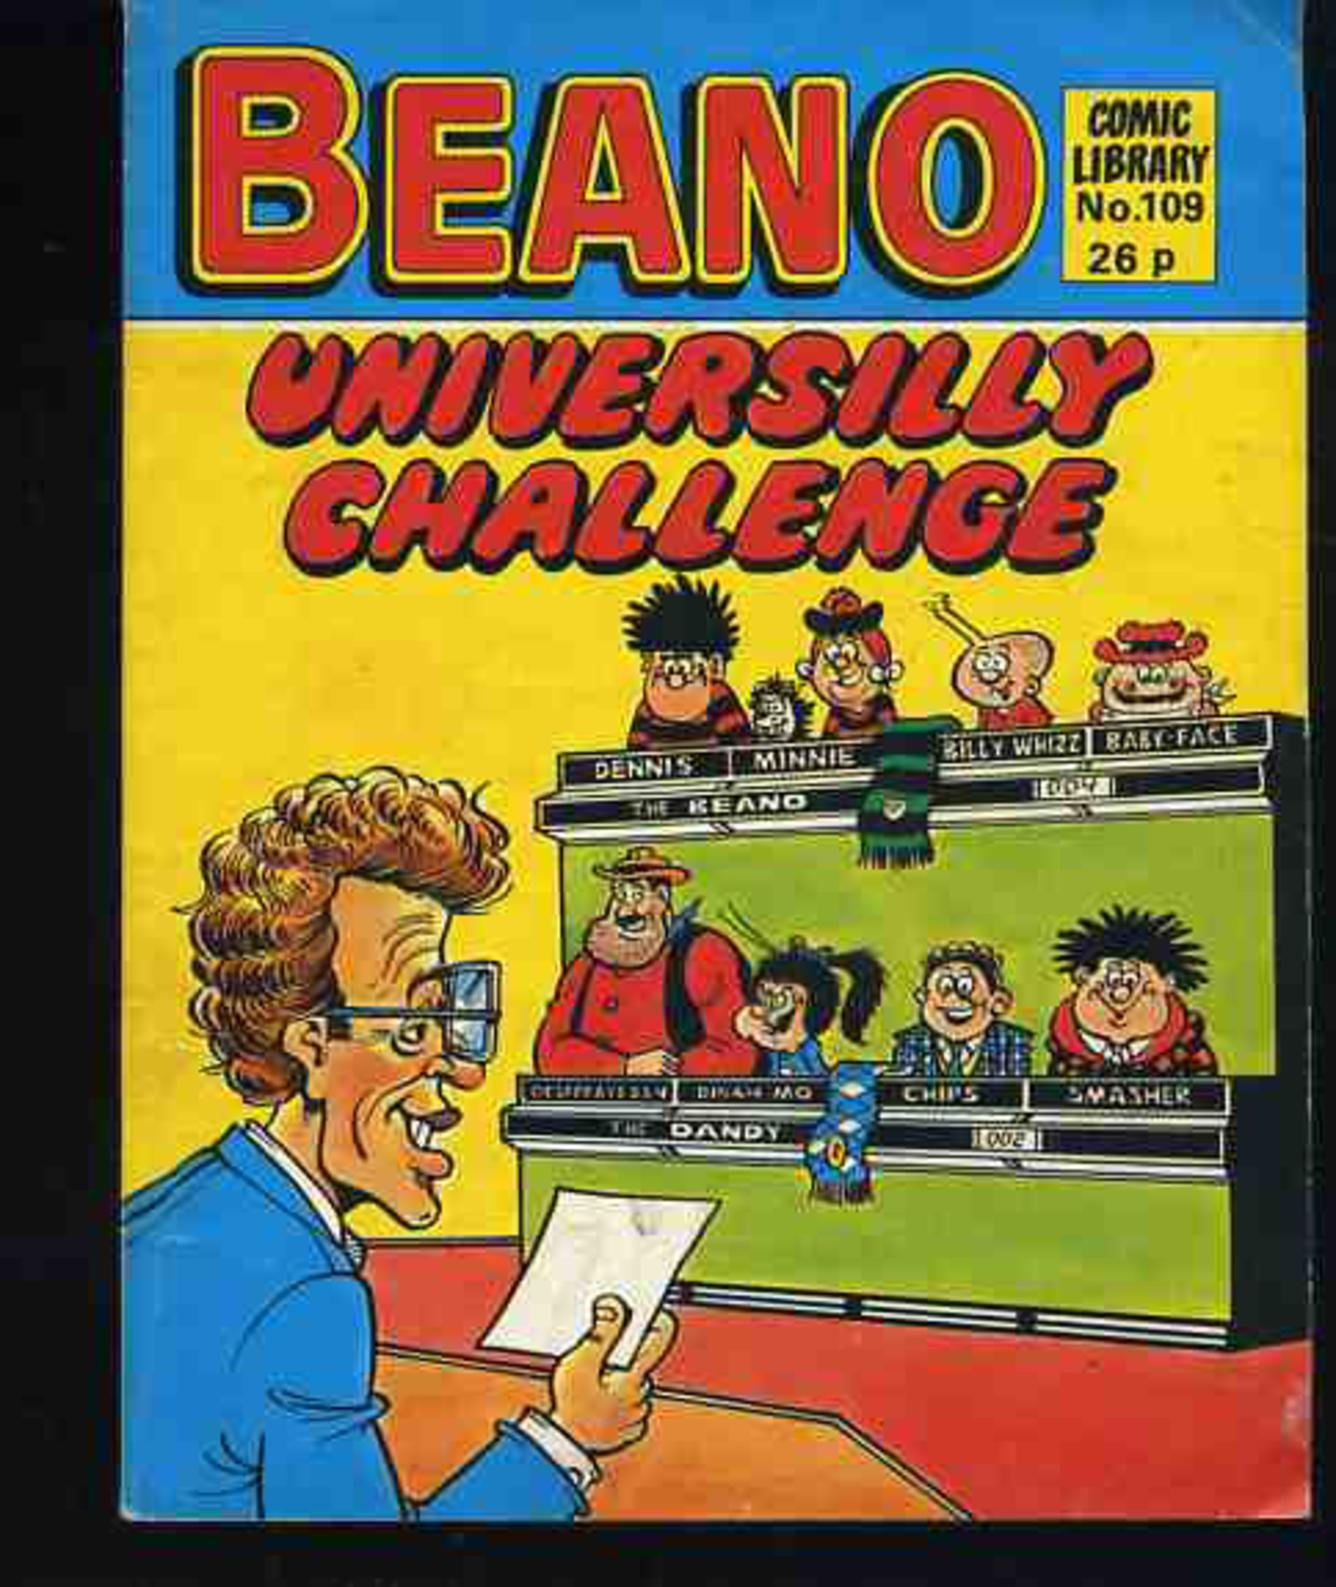 Image for Beano Comic Library No 109 Universally Challenge